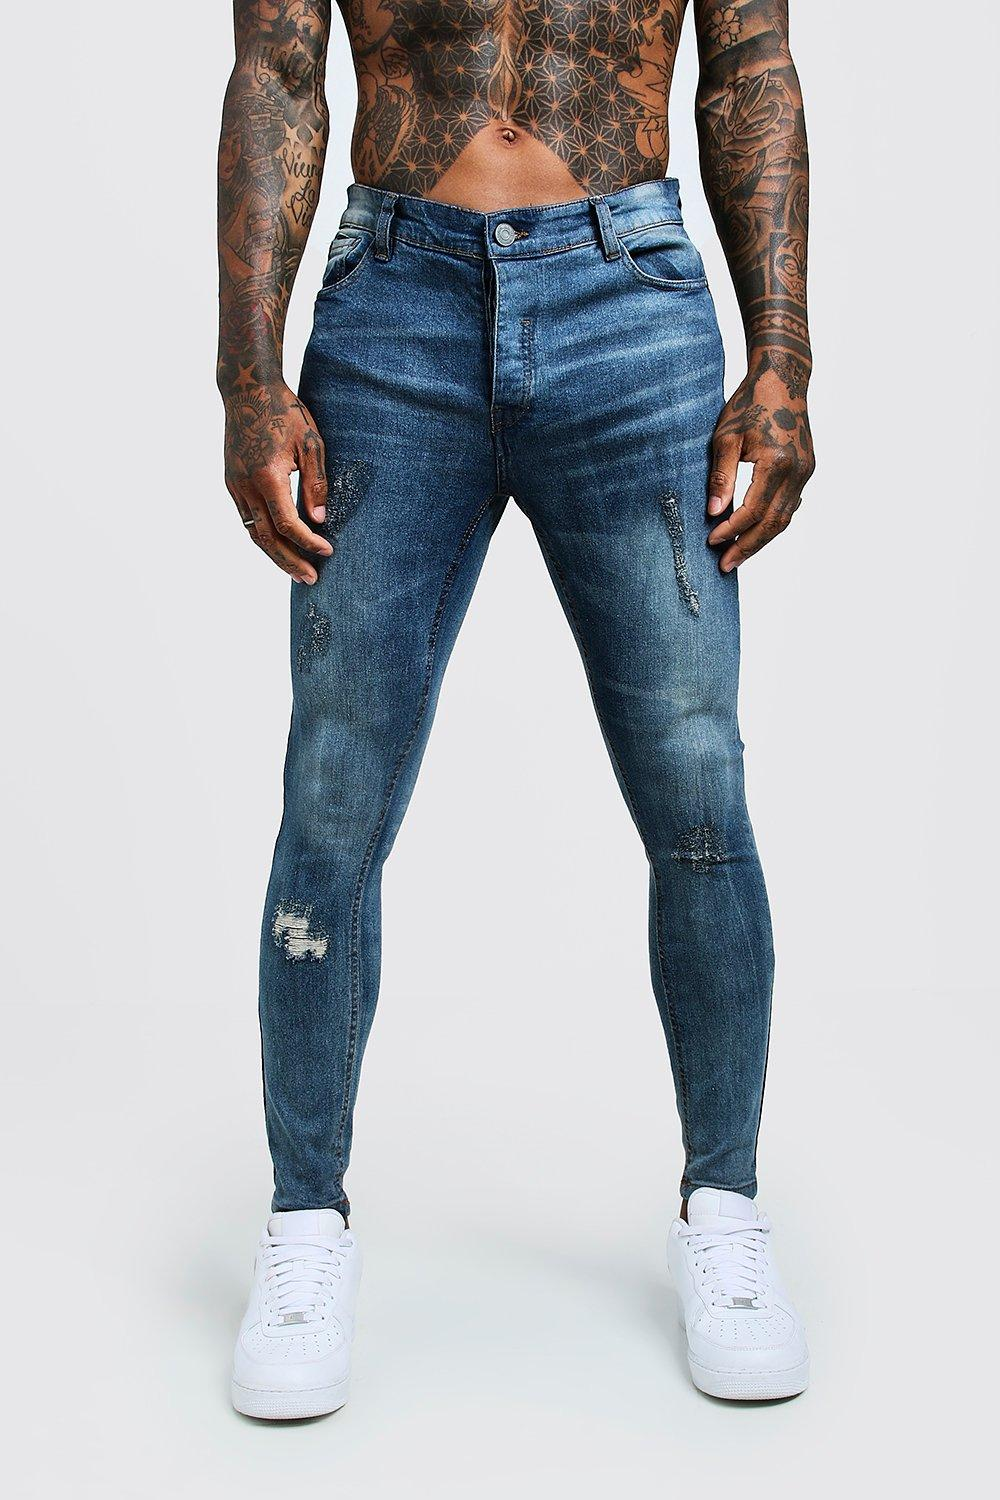 254e89b0334 ... Skinny Jeans With Ripped Knees. Hover to zoom